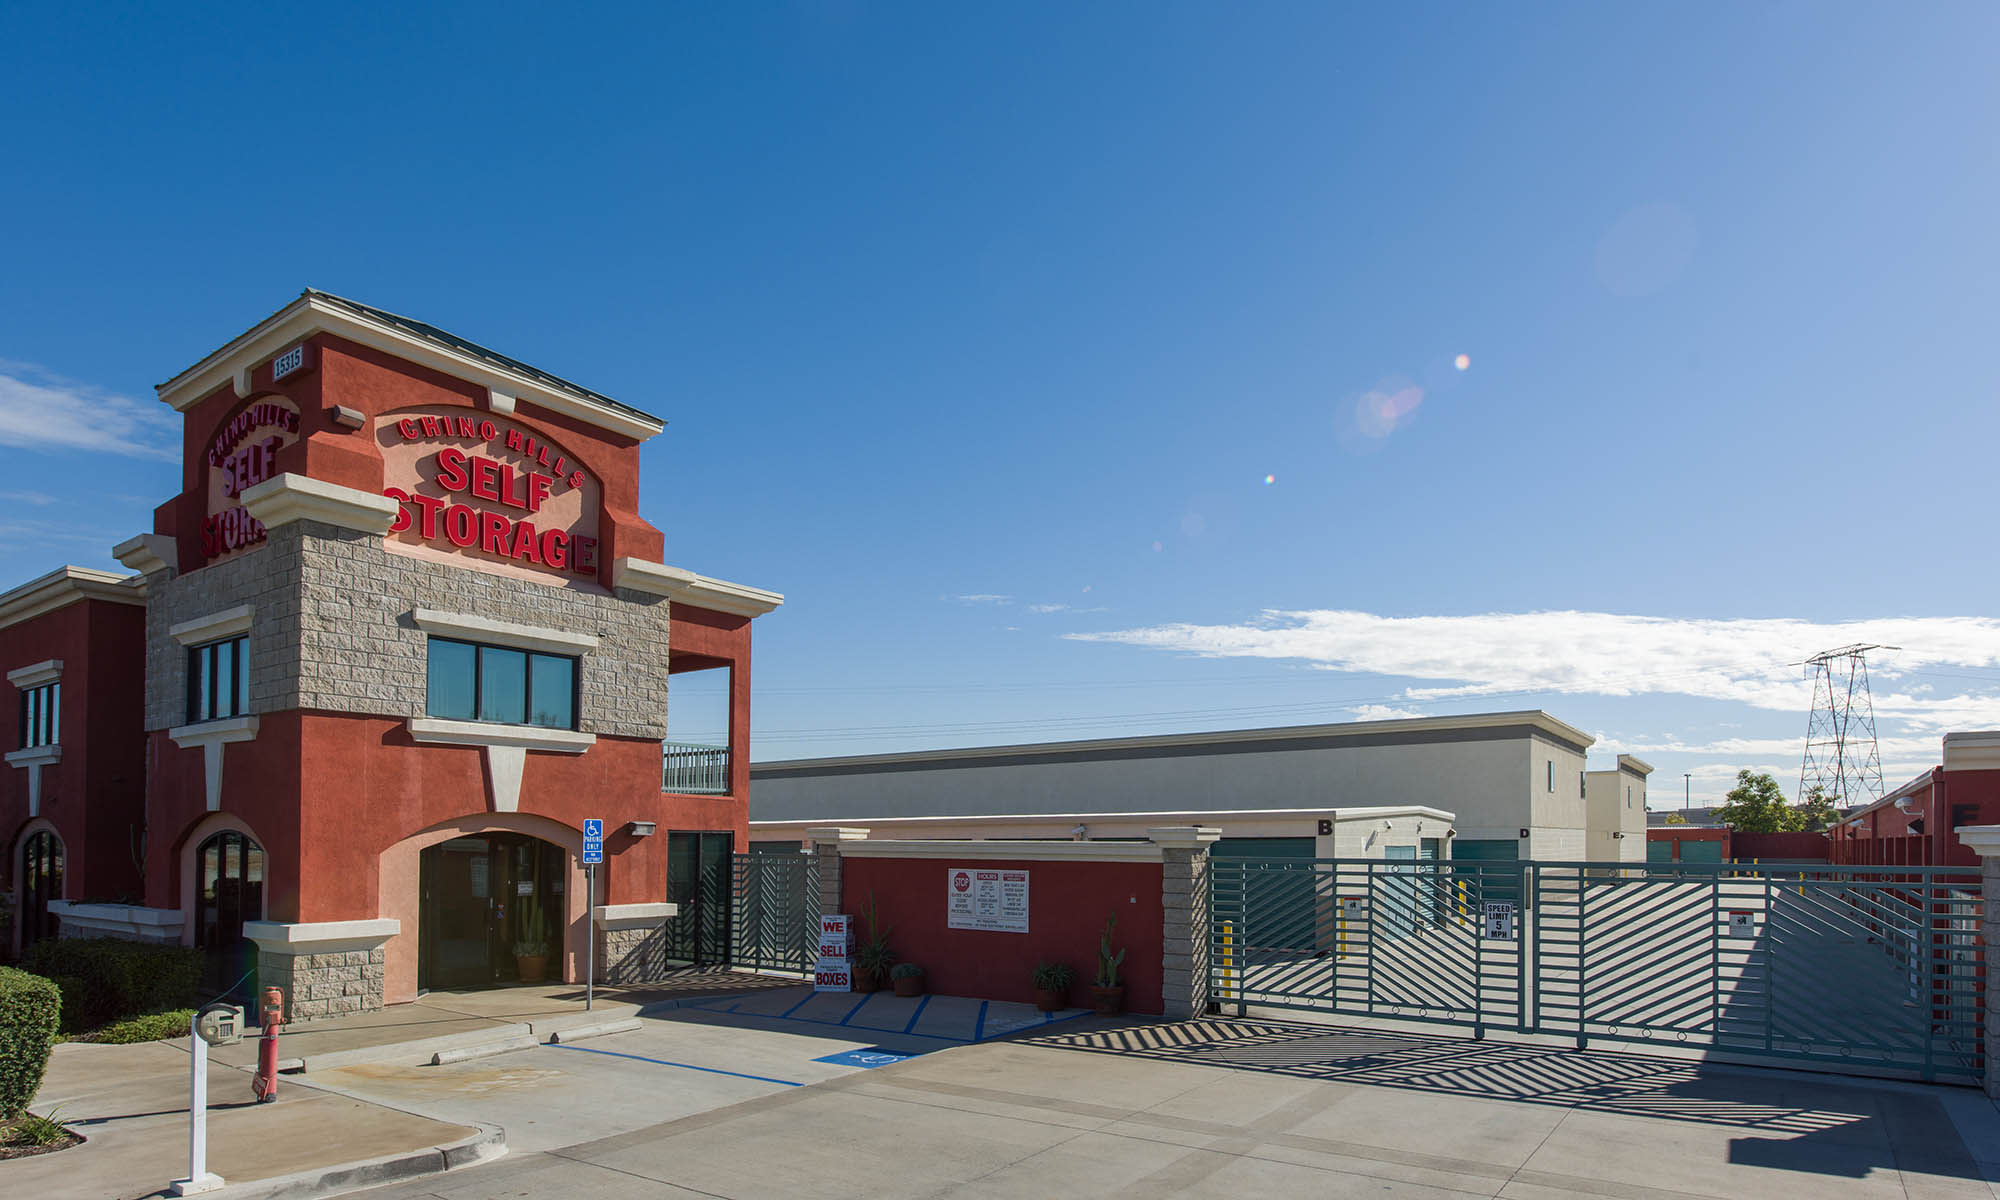 Chino Hills Self Storage - Home of the 1st Year Price Guarantee!